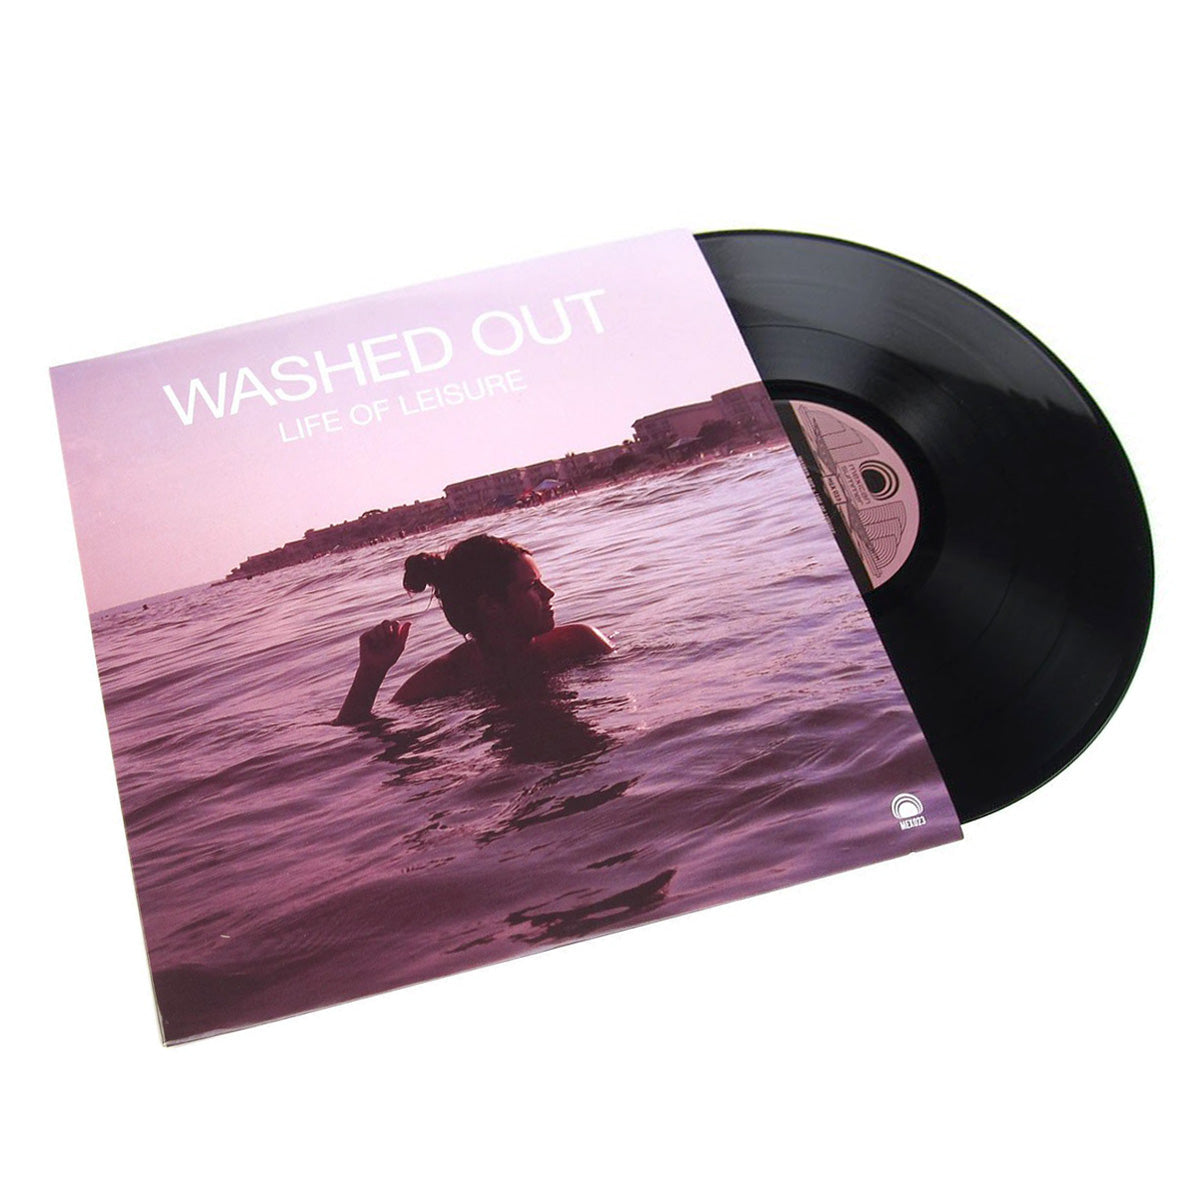 Washed Out: Life Of Leisure (with FREE MP3 Download) EP